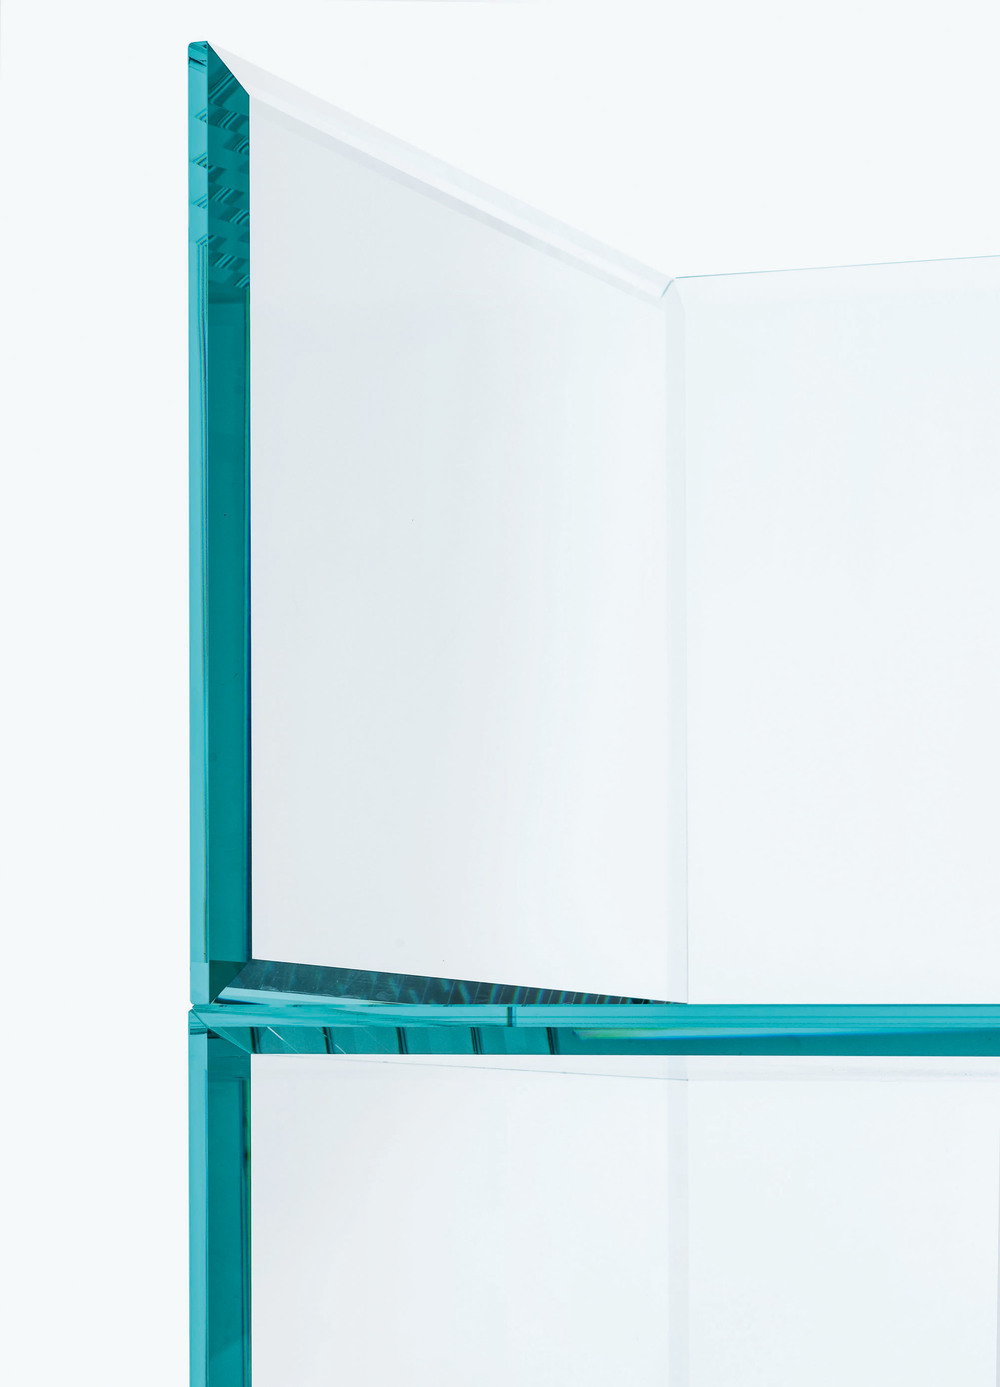 the-tree-mag_PRISM GLASS CHAIR  GLASS SOFA by Tokujin Yoshioka_10.jpg